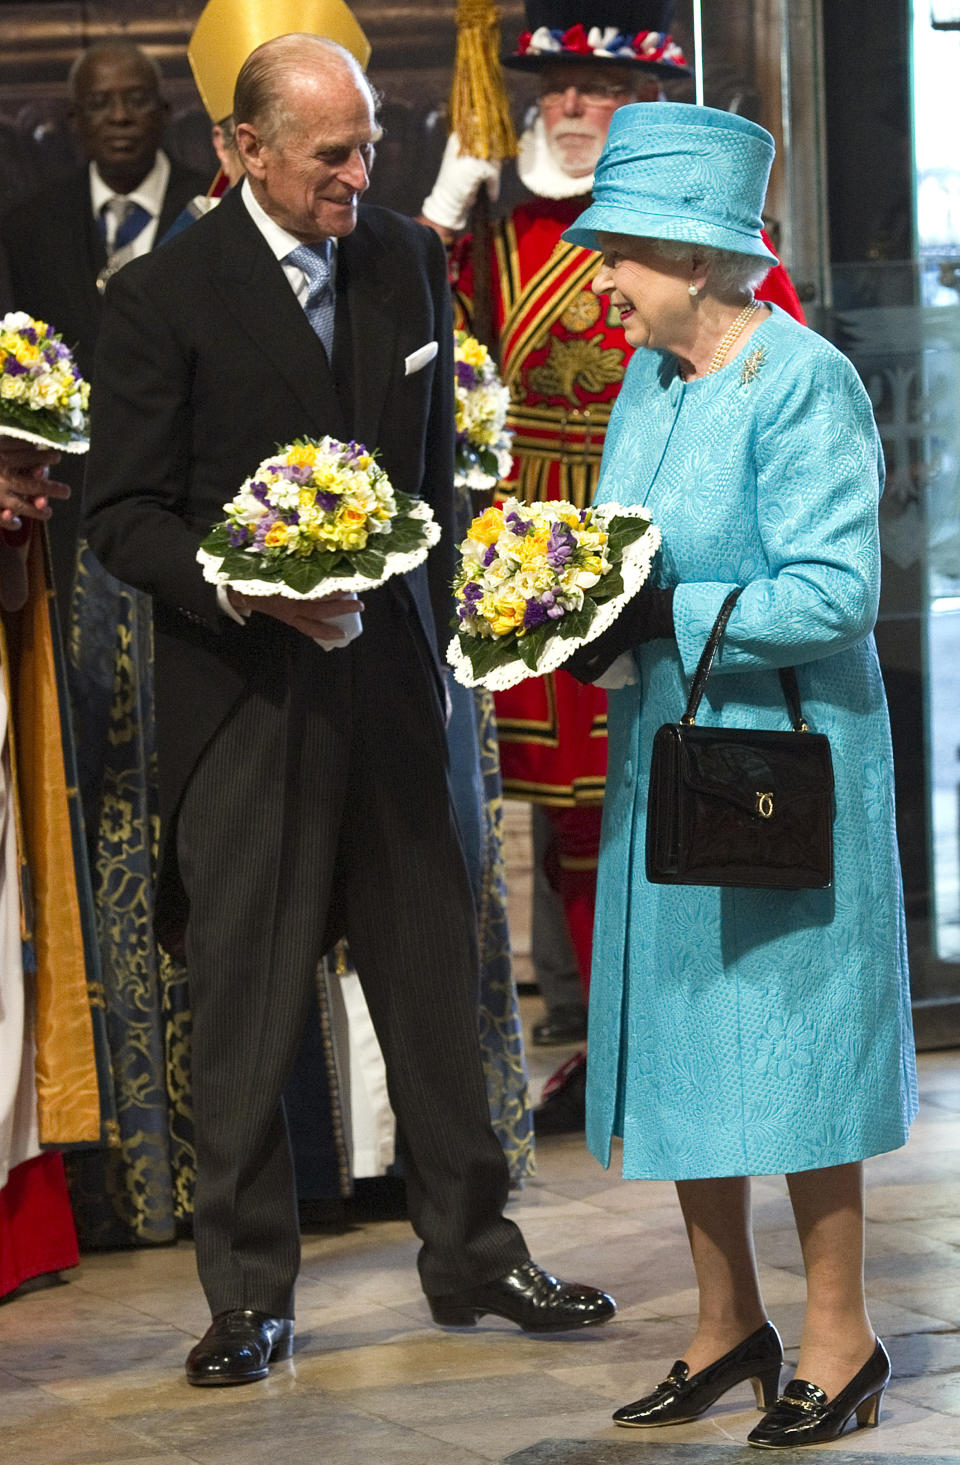 Britain's Queen Elizabeth II (R) and her husband Prince Philip attend the Maundy Service at Westminster Abbey on April 21, 2011, on the occasion of the Queen's 85th birthday. AFP PHOTO/ARTHUR EDWARDS/POOL (Photo credit should read ARTHUR EDWARDS/AFP via Getty Images)